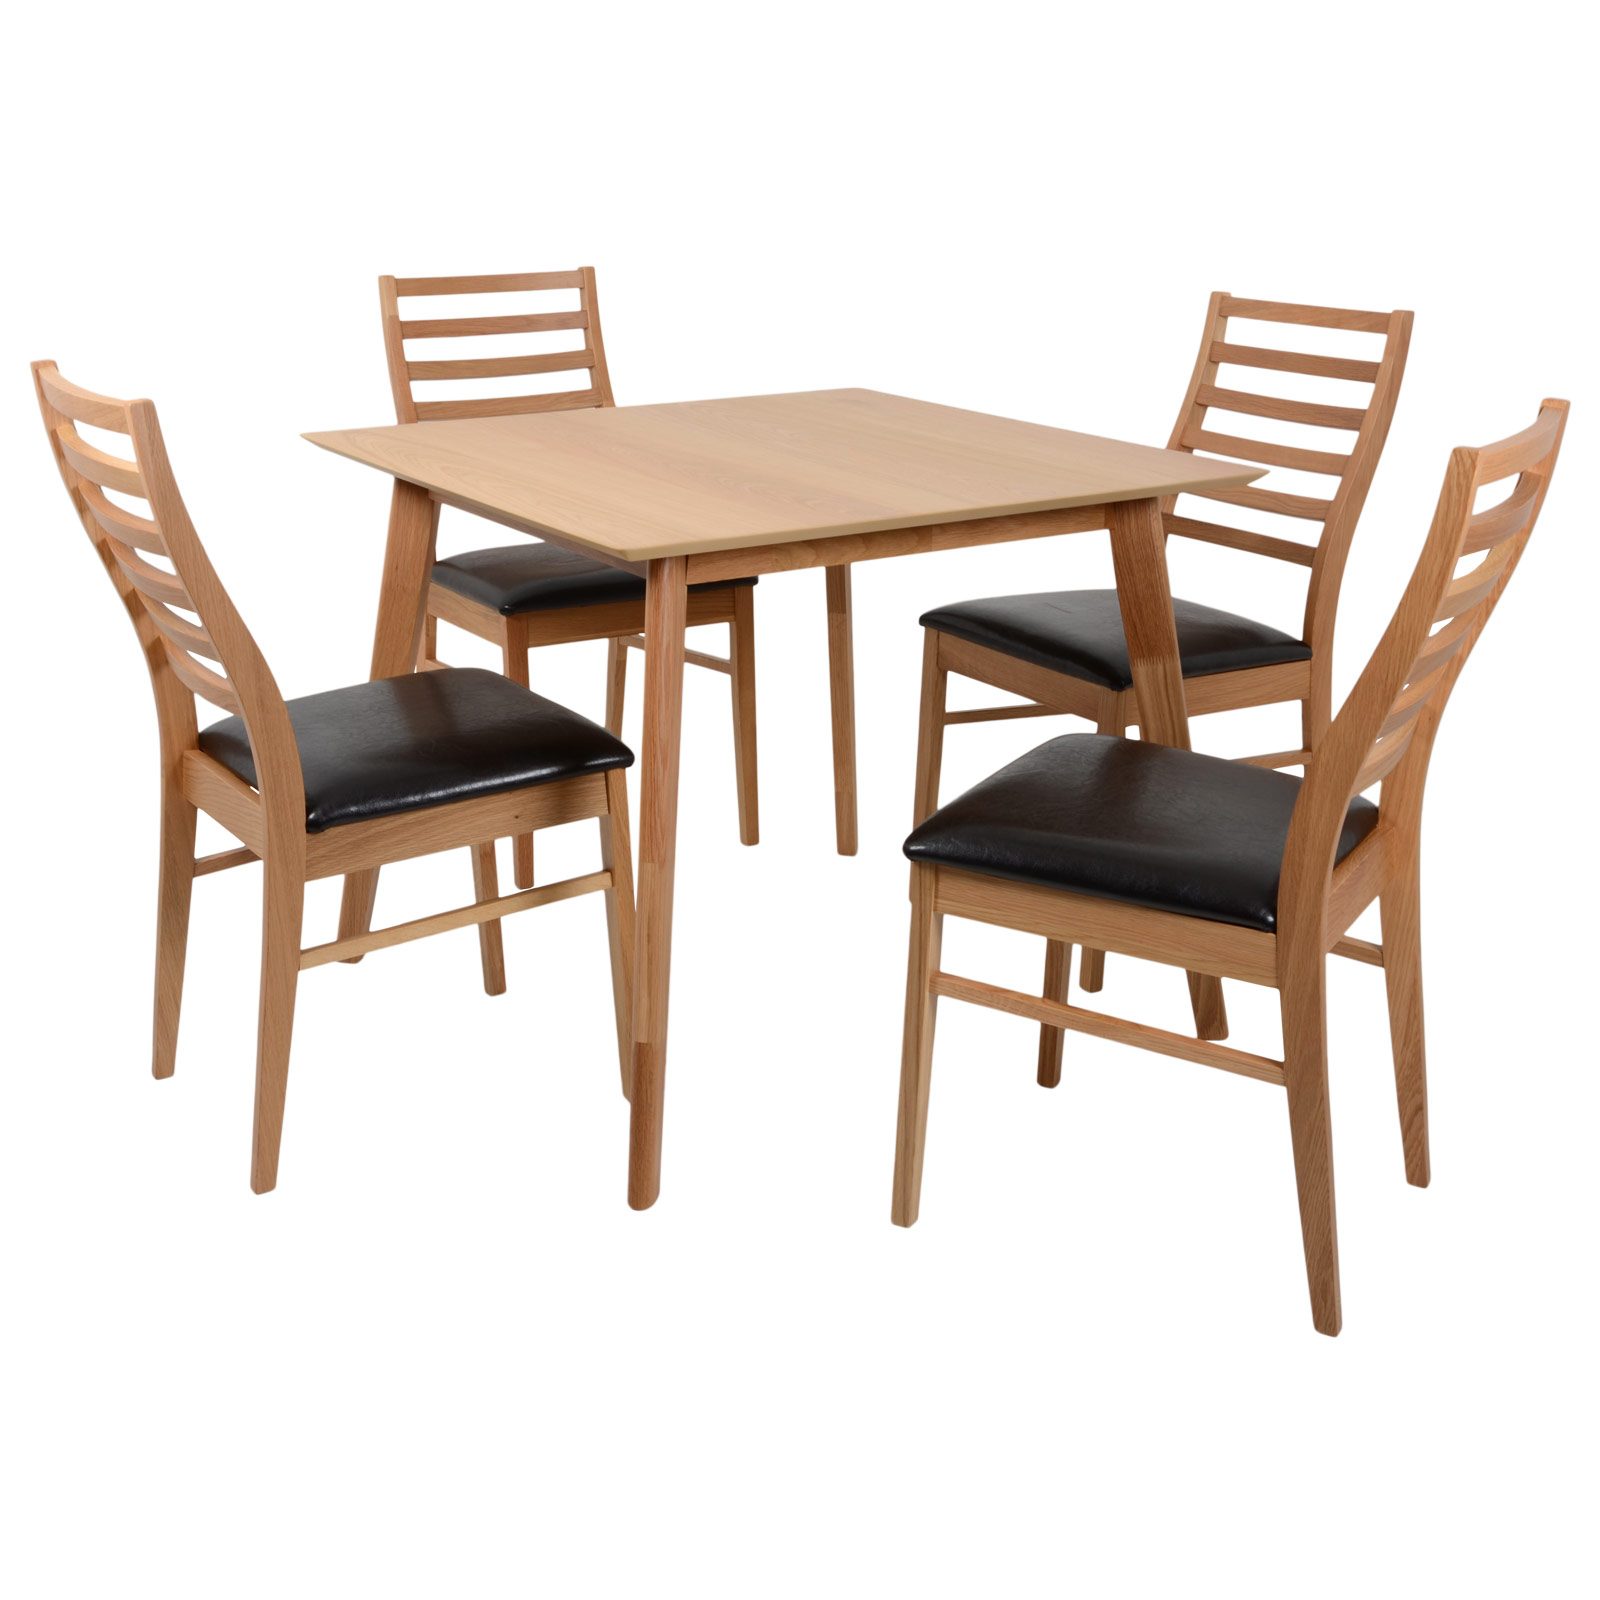 Oak Dining Set Square Table 4 Faux Leather Chairs Kitchen Diner Wooden Furnit